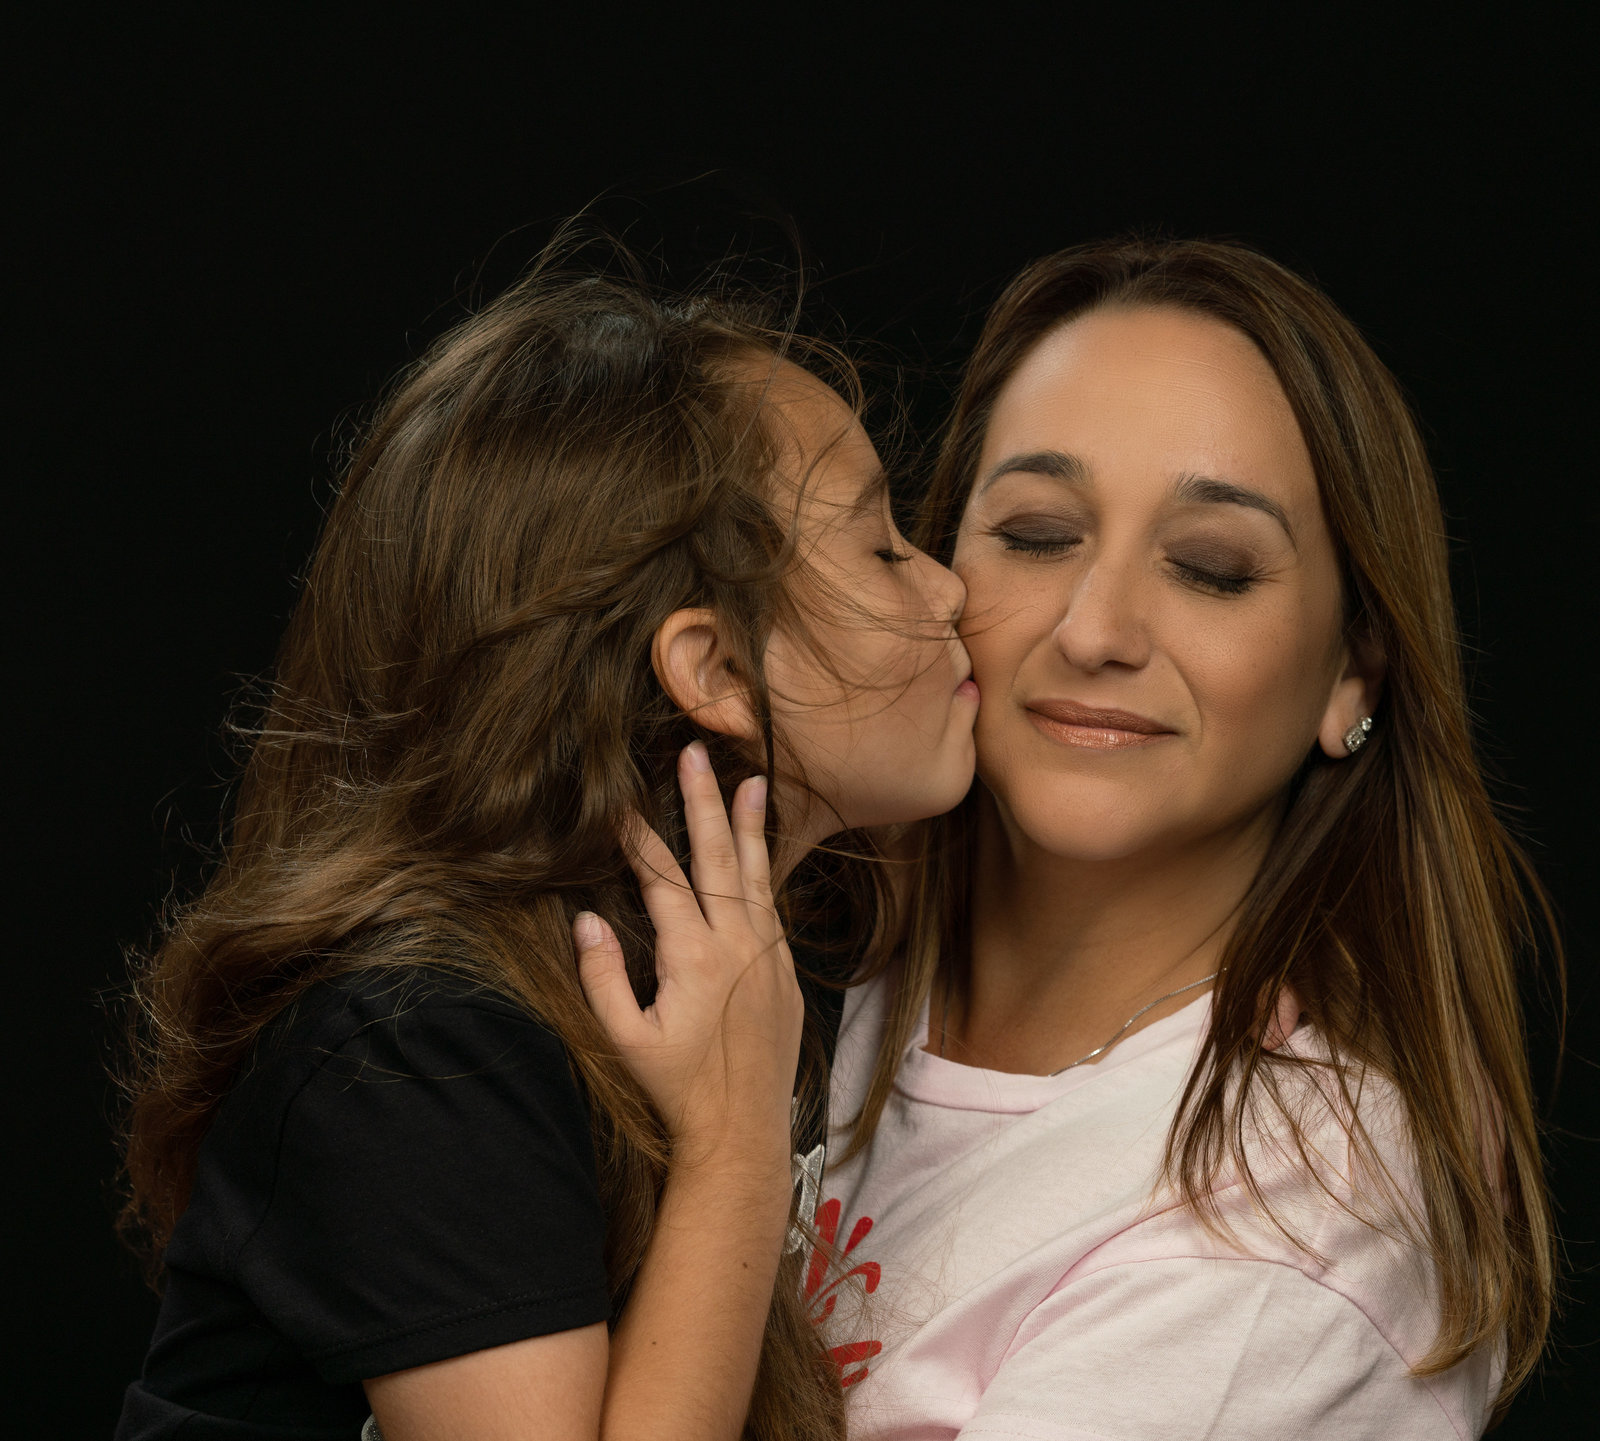 Daughter kissing mother with eys closed